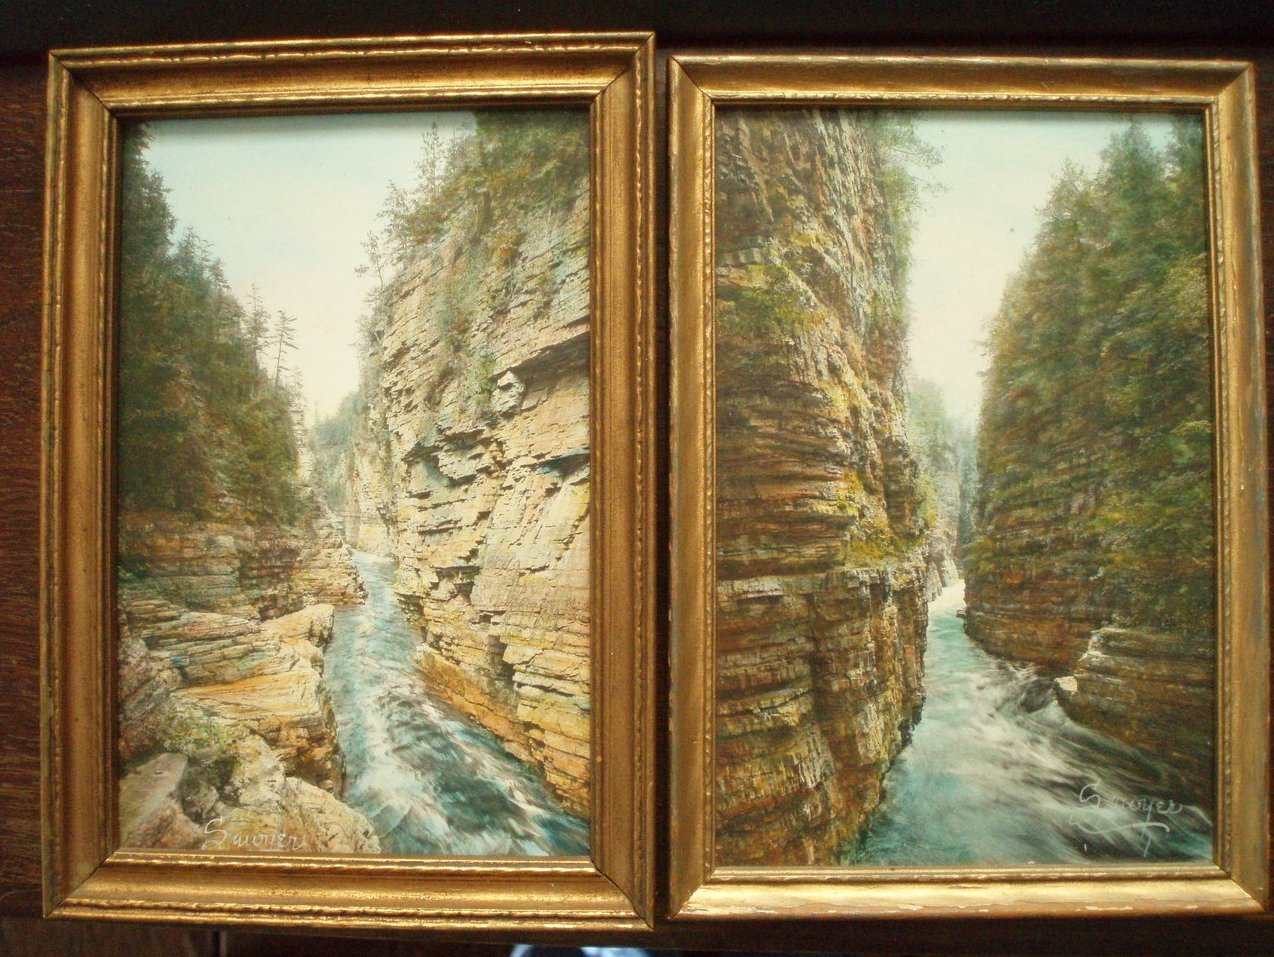 2 Charles Sawyer hand tint photos Ausable Chasm